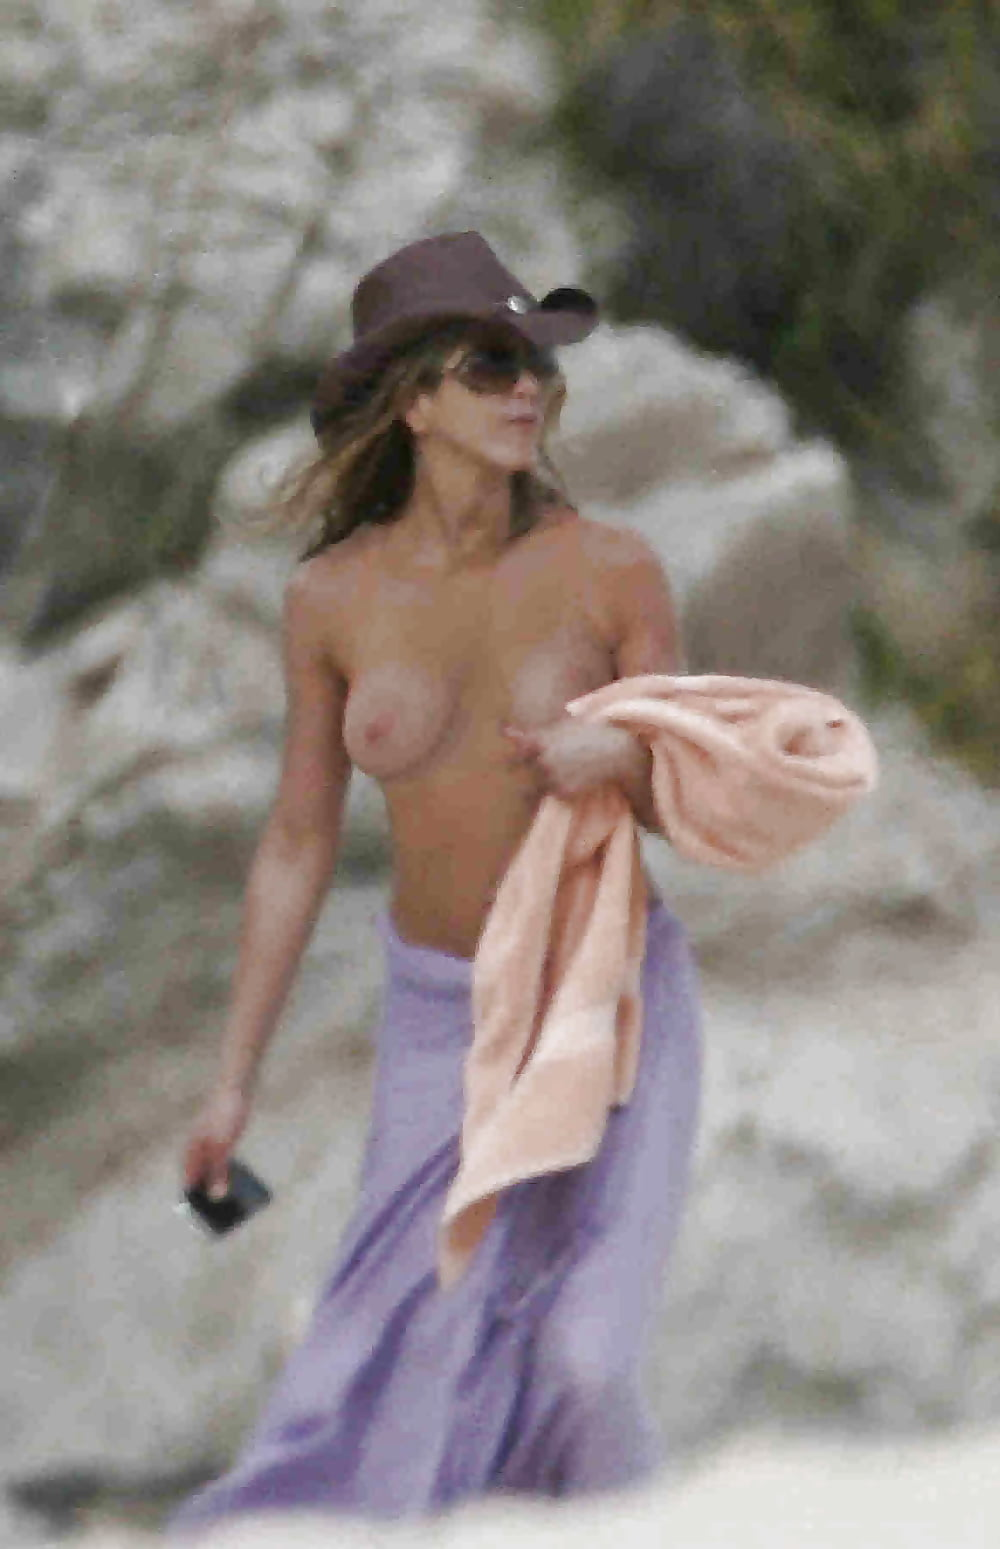 jennifer-aniston-topless-video